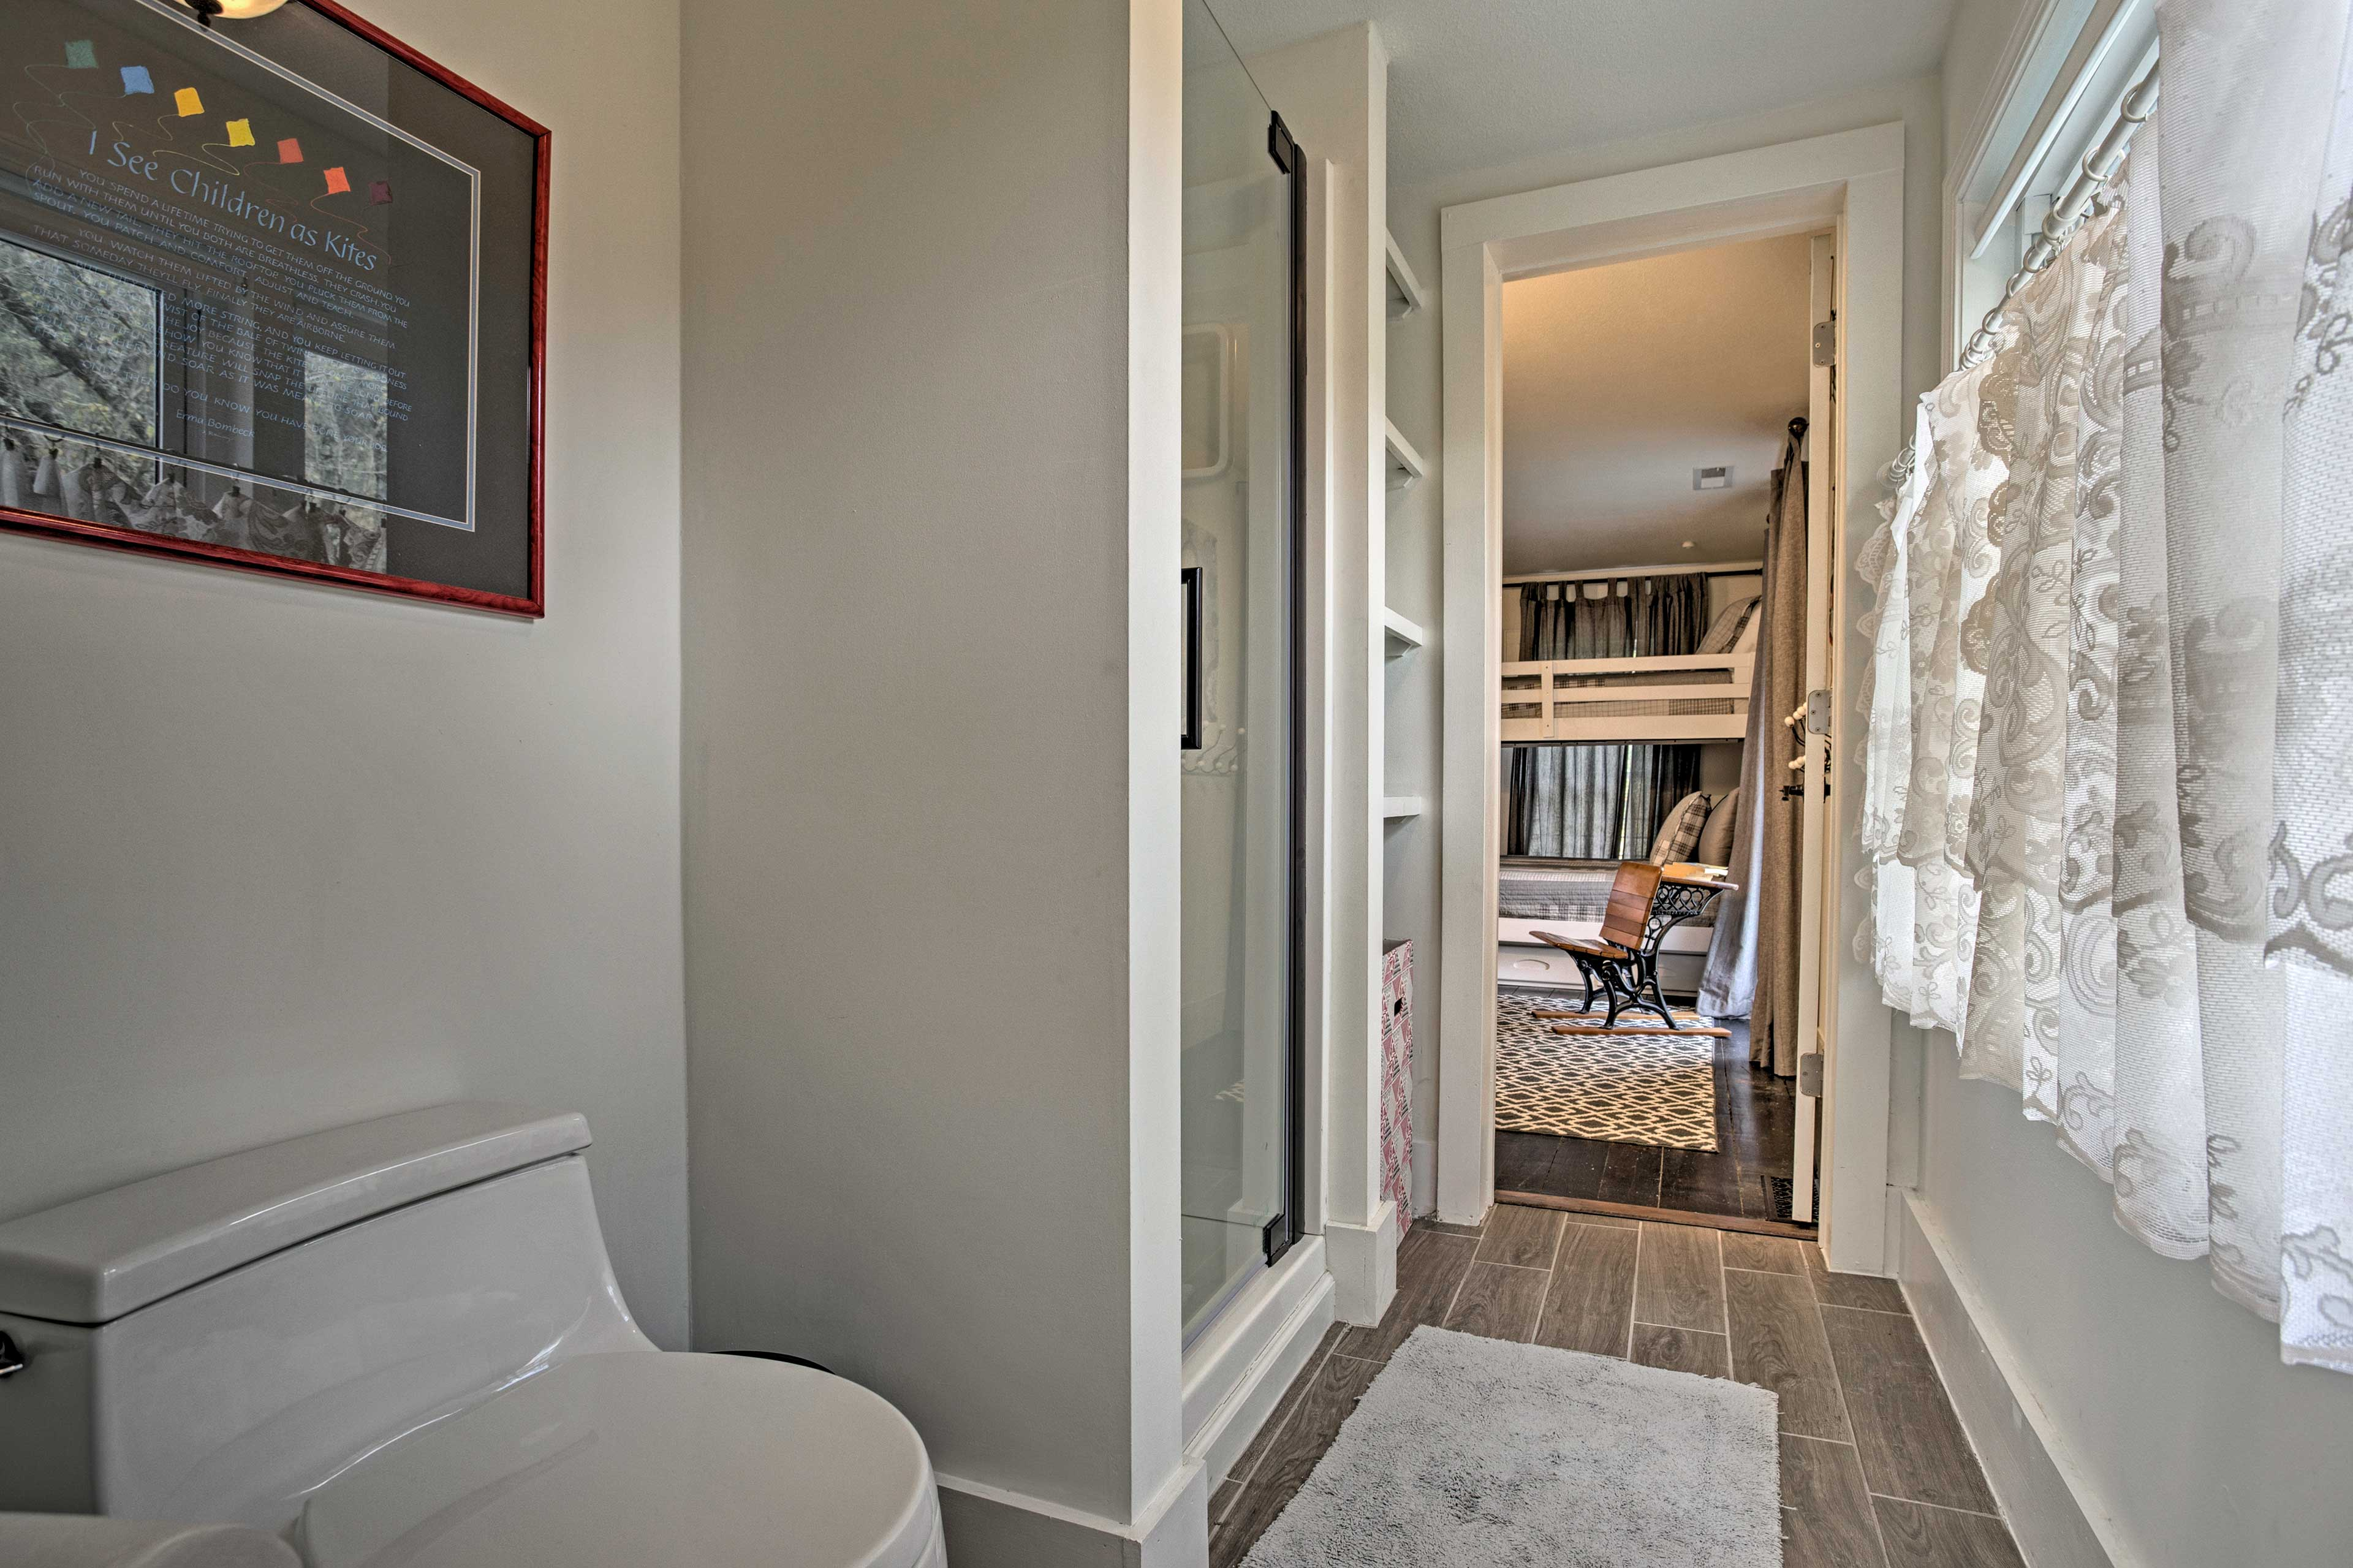 Two bedrooms enjoy access to this Jack-and-Jill bathroom.